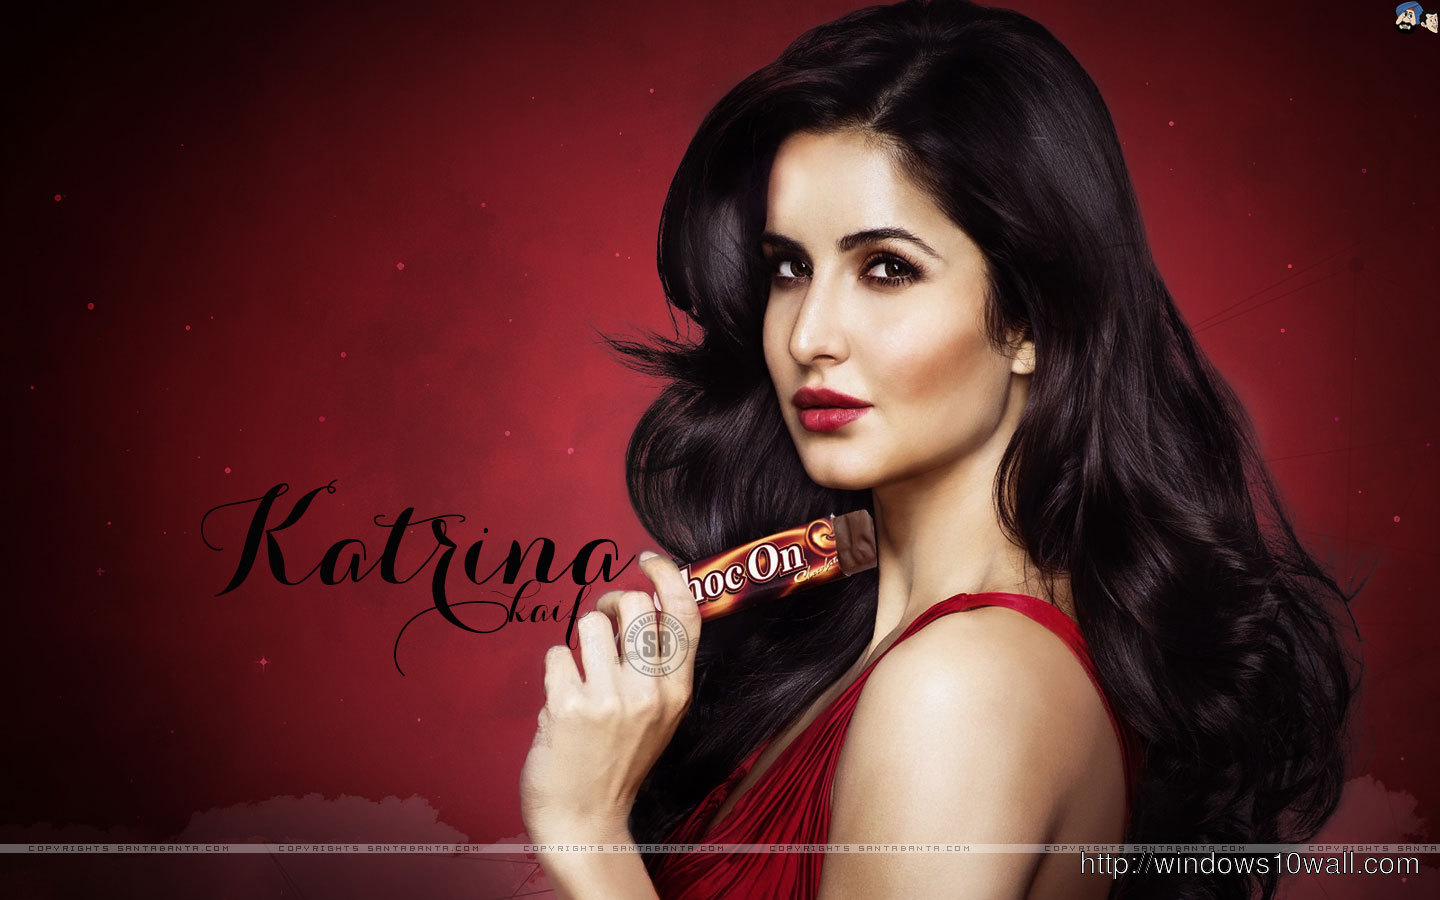 Katrina Kaif in Red Background Wallpaper